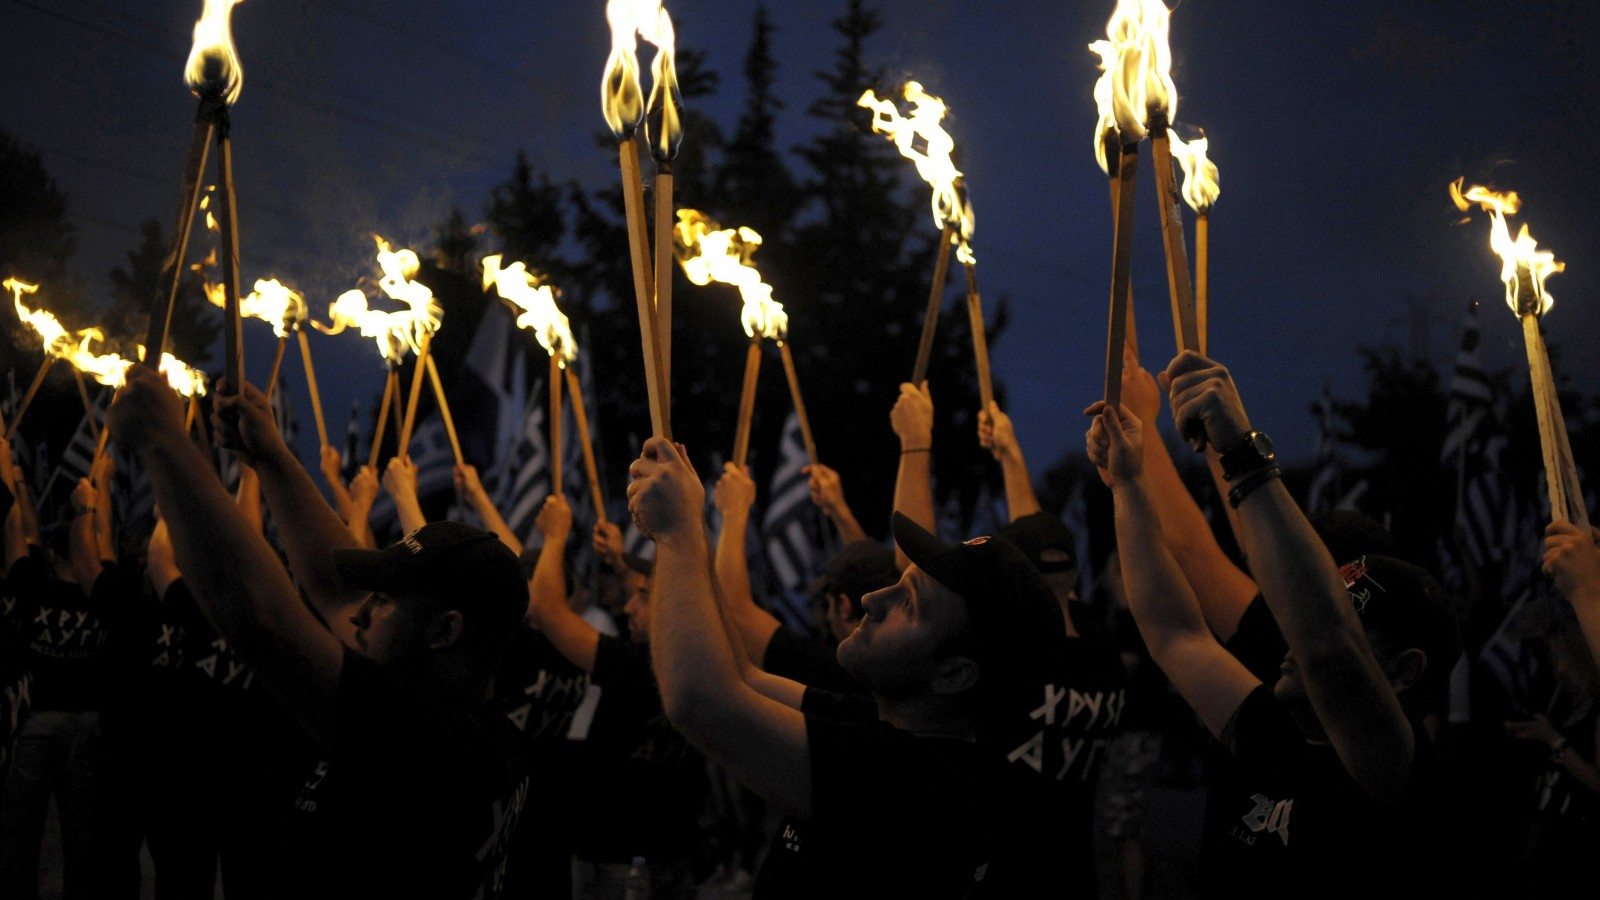 REFILE - CORRECTING BYLINEGolden Dawn supporters lift torches as they take part in a ceremony in Thermopylae, outside Athens, Greece, September 5, 2015.  Flaming torches raised, far-right Golden Dawn supporters dressed in black chanted the Greek national anthem as darkness fell on Thermopylae, where King Leonidas and 300 Spartans defied a vast Persian army in 480 BC. Standing before them, a member of the European Parliament from Golden Dawn, the euro zone's most extreme right-wing political party, roused the crowd with defiant denunciations of enemies at home and abroad ahead of a national election on September 20, 2015.  Picture taken September 5, 2015 REUTERS/Fotis Plegas G. - RTSMTB